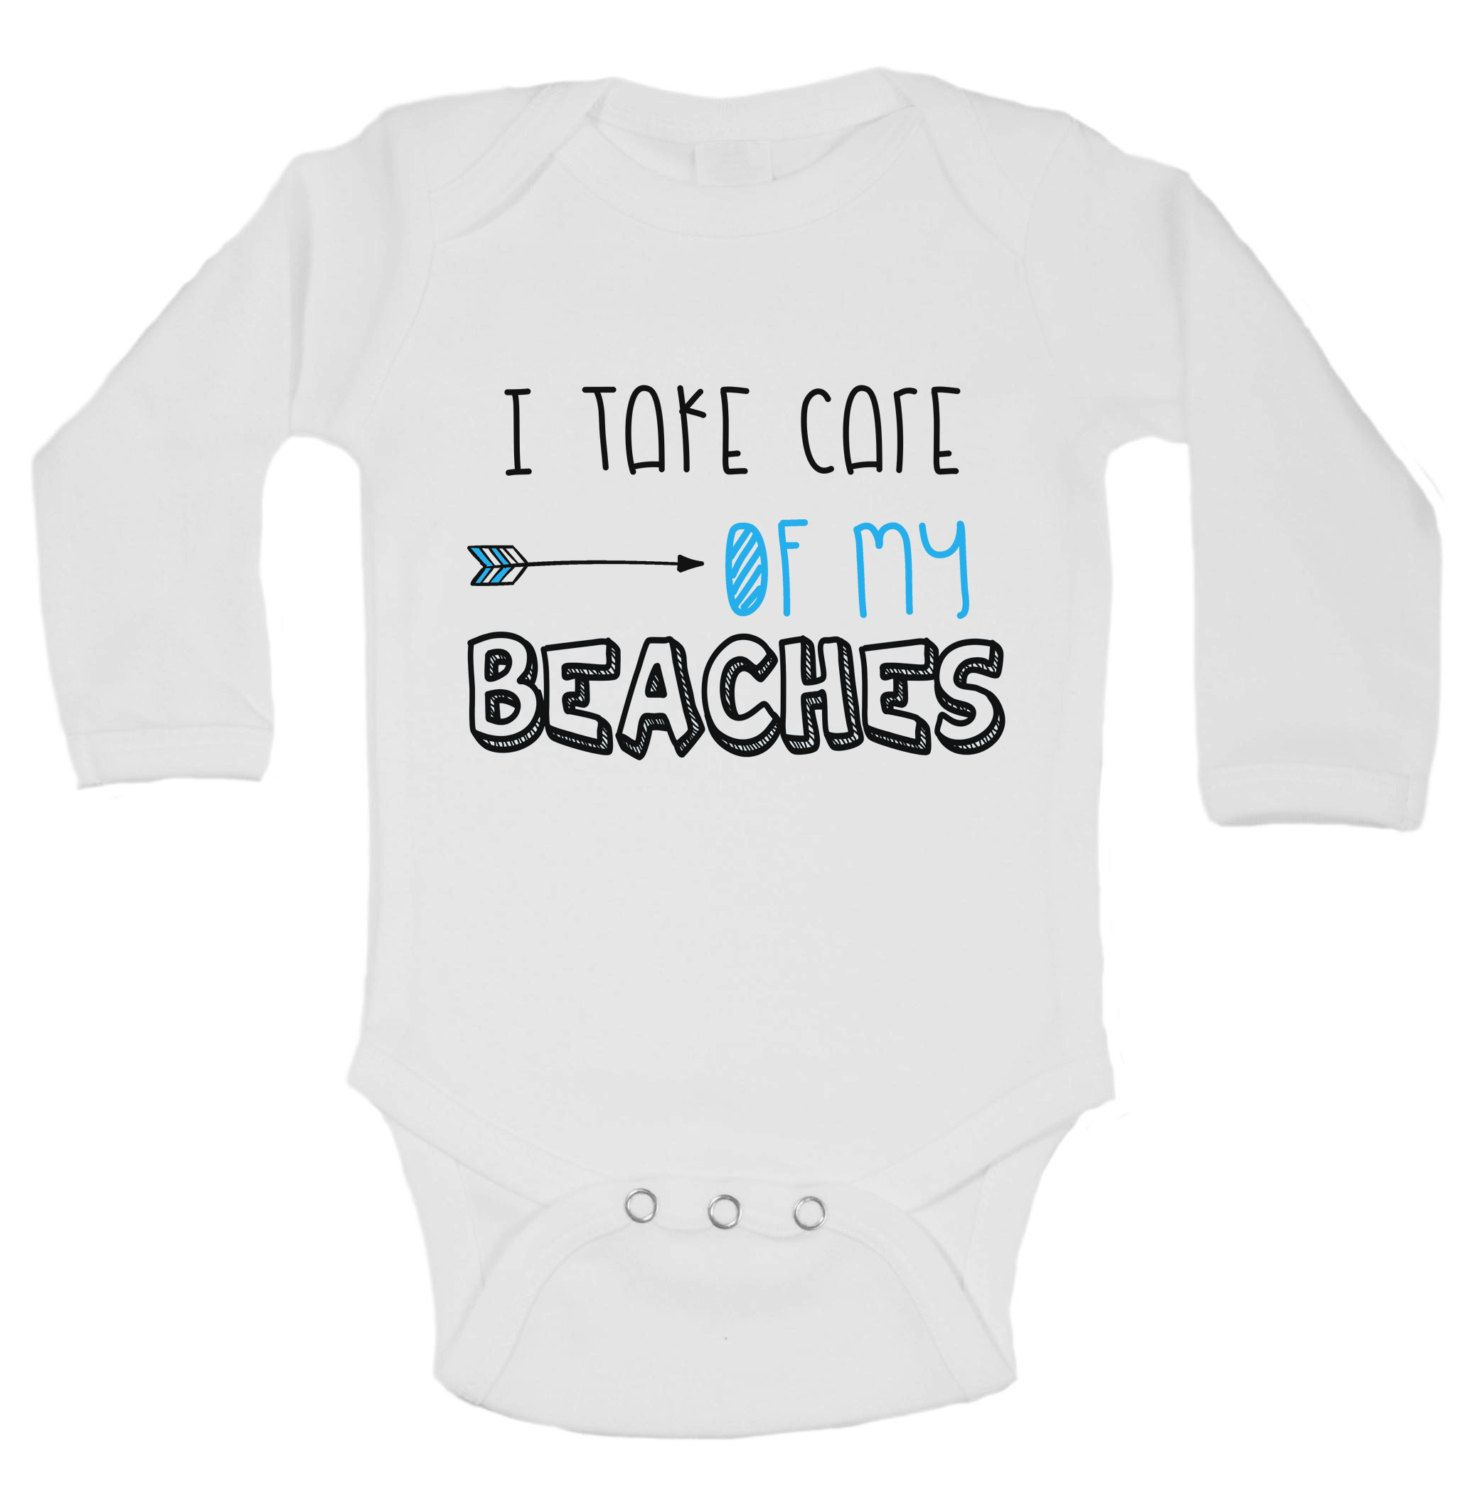 Super Cute Beach Baby esie FREE SHIPPING on ALL ORDERS